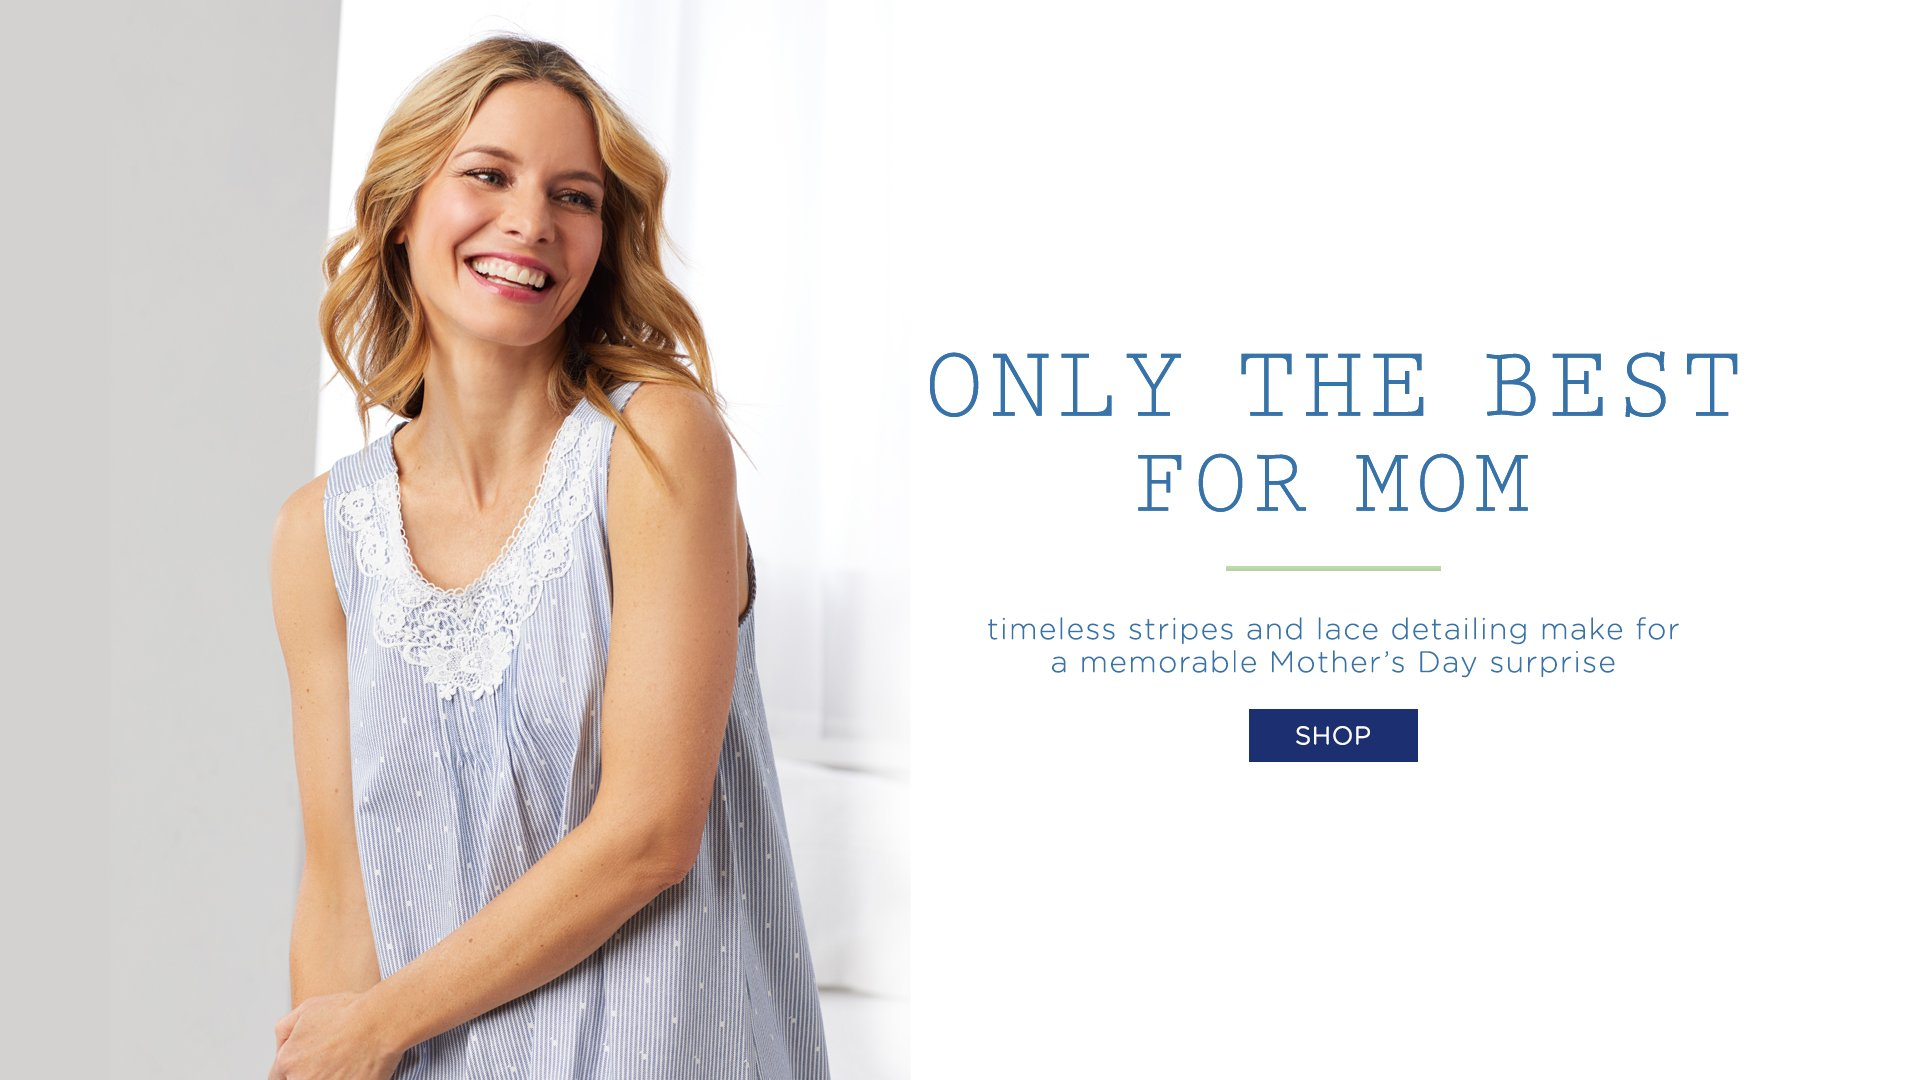 CH mother's day homepage banner 2